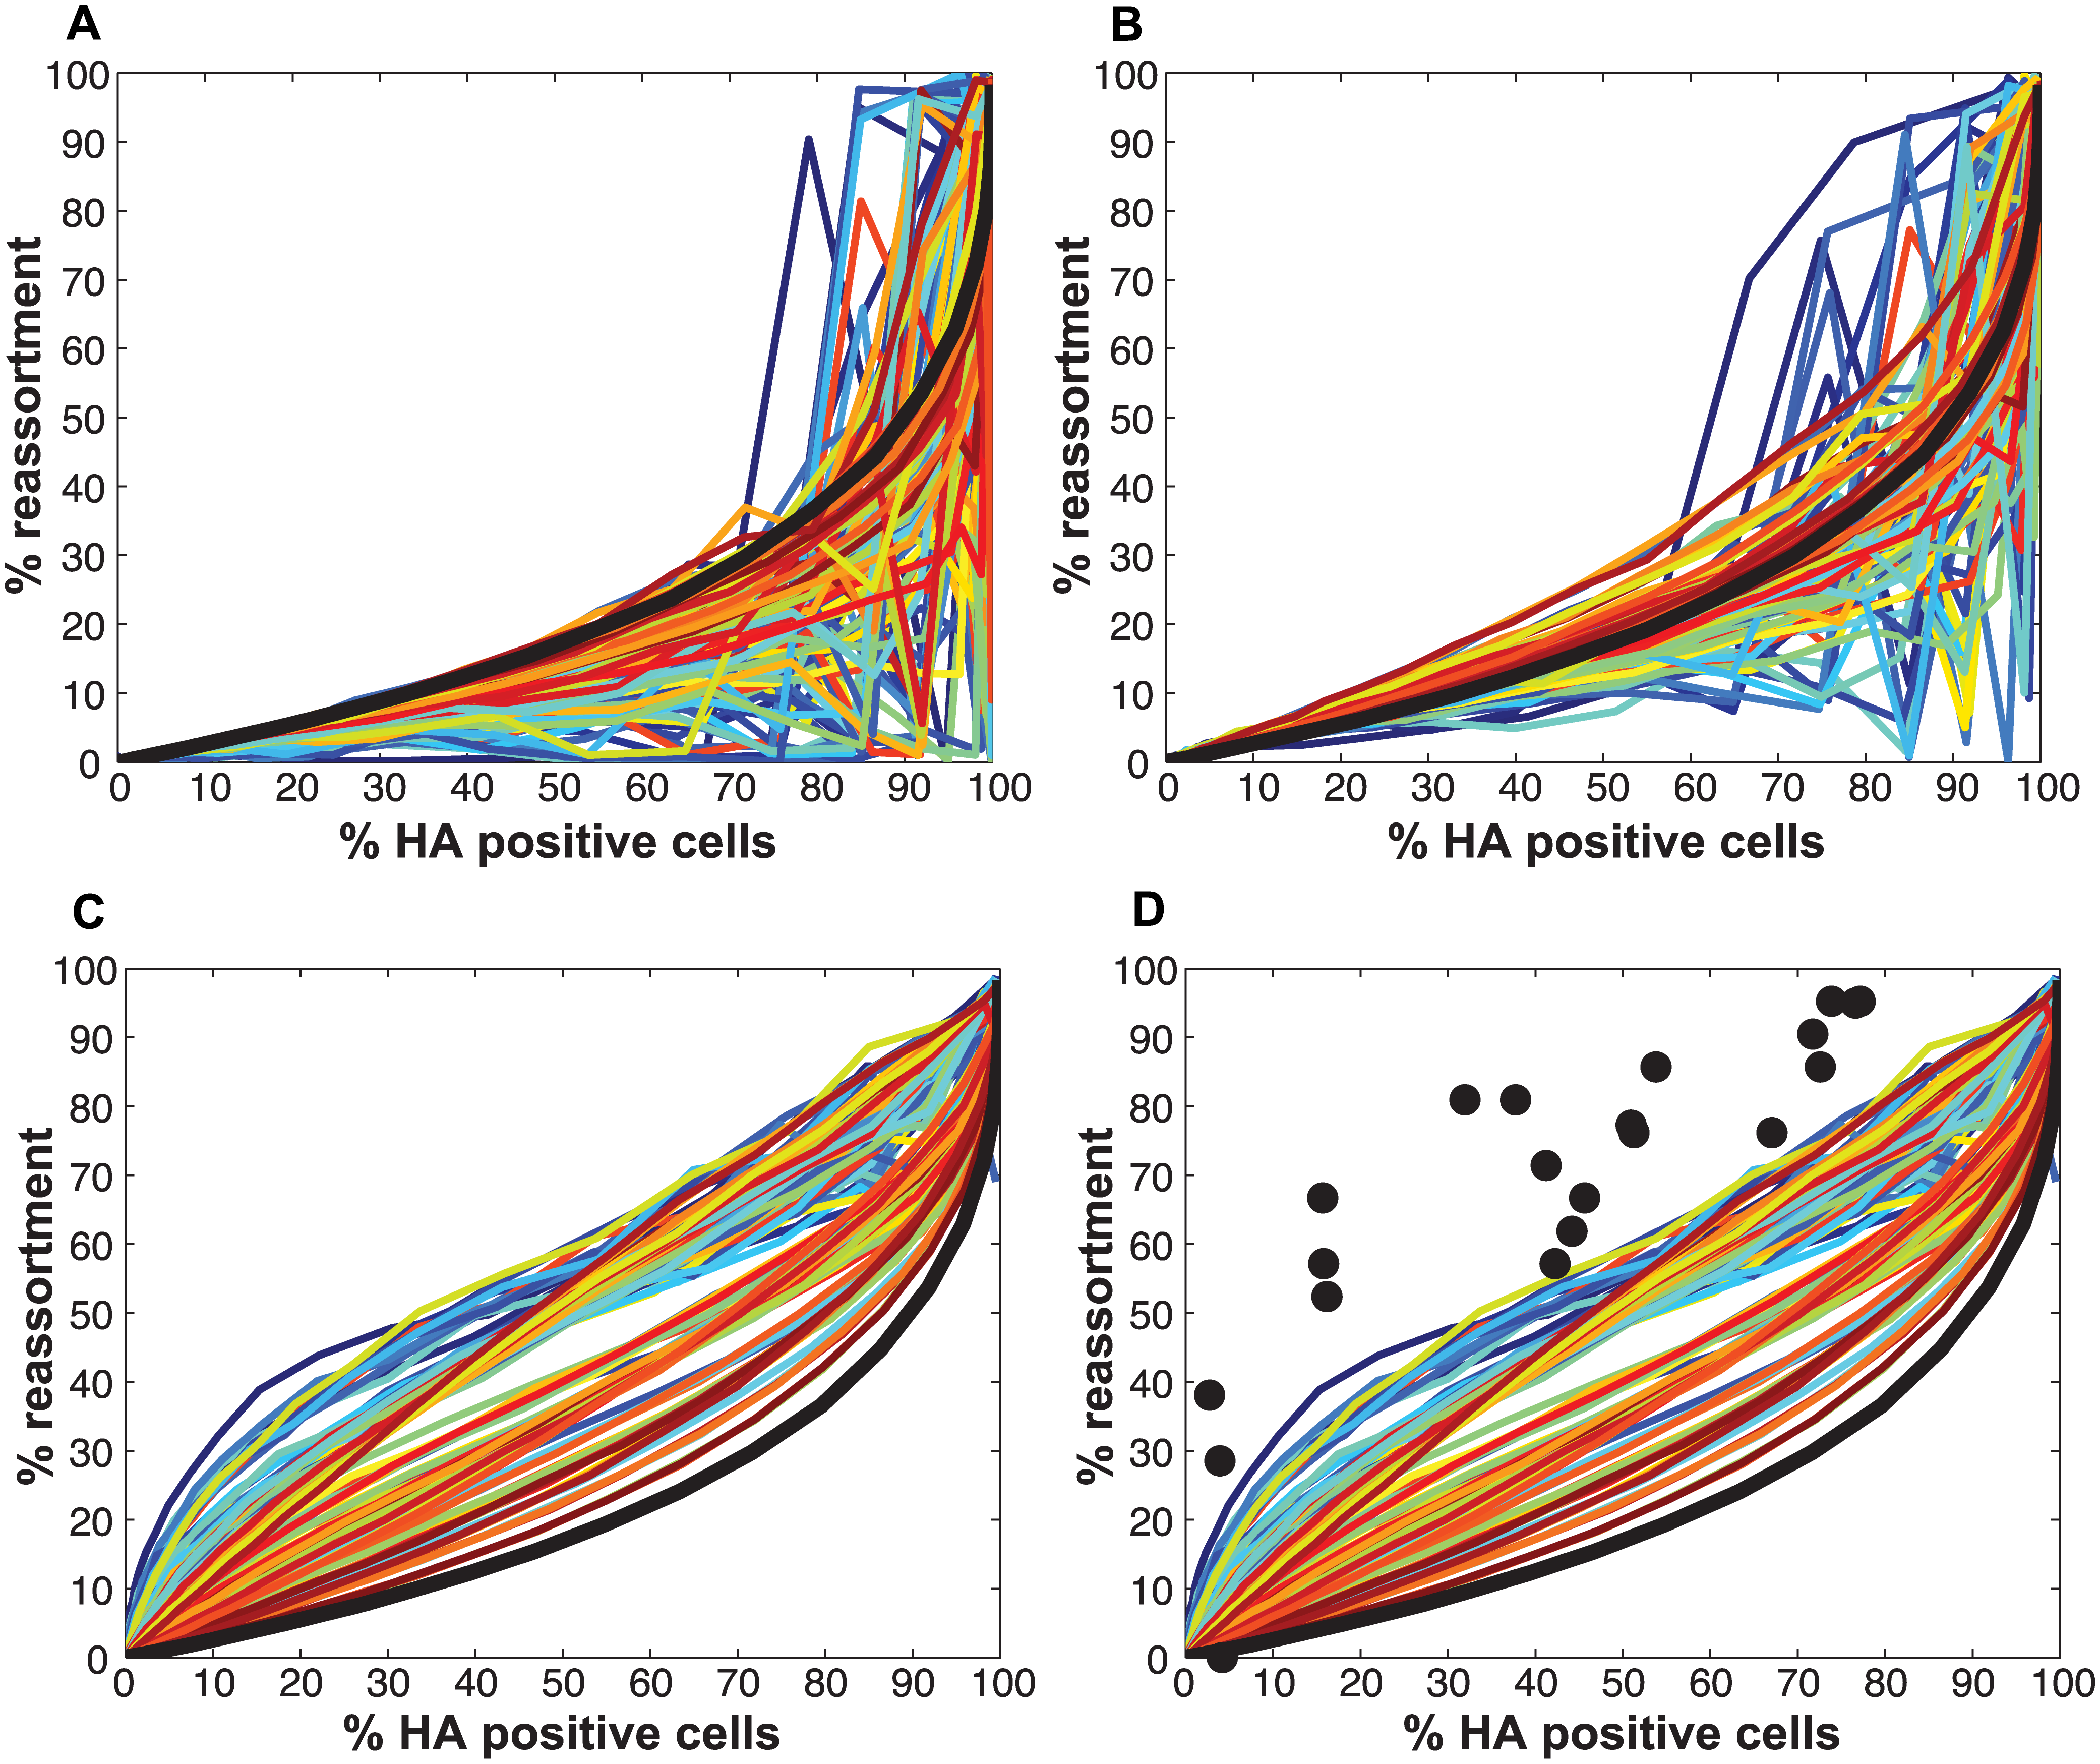 Impact on % reassortment of introducing defective interfering particles into the model.